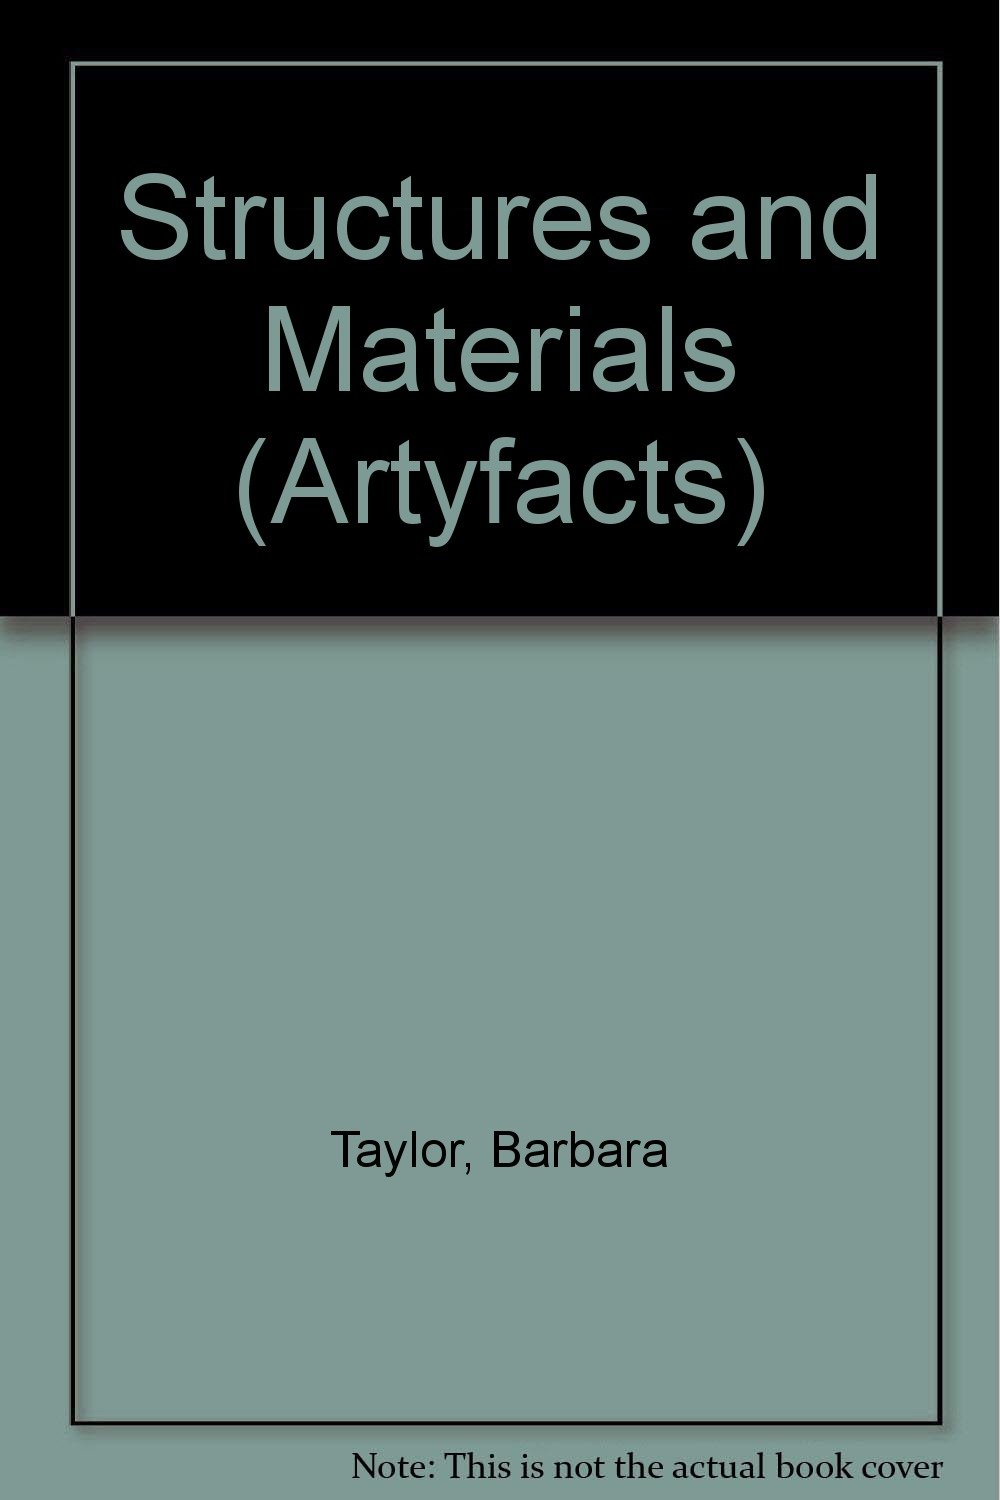 Structures and Materials (Artyfacts)